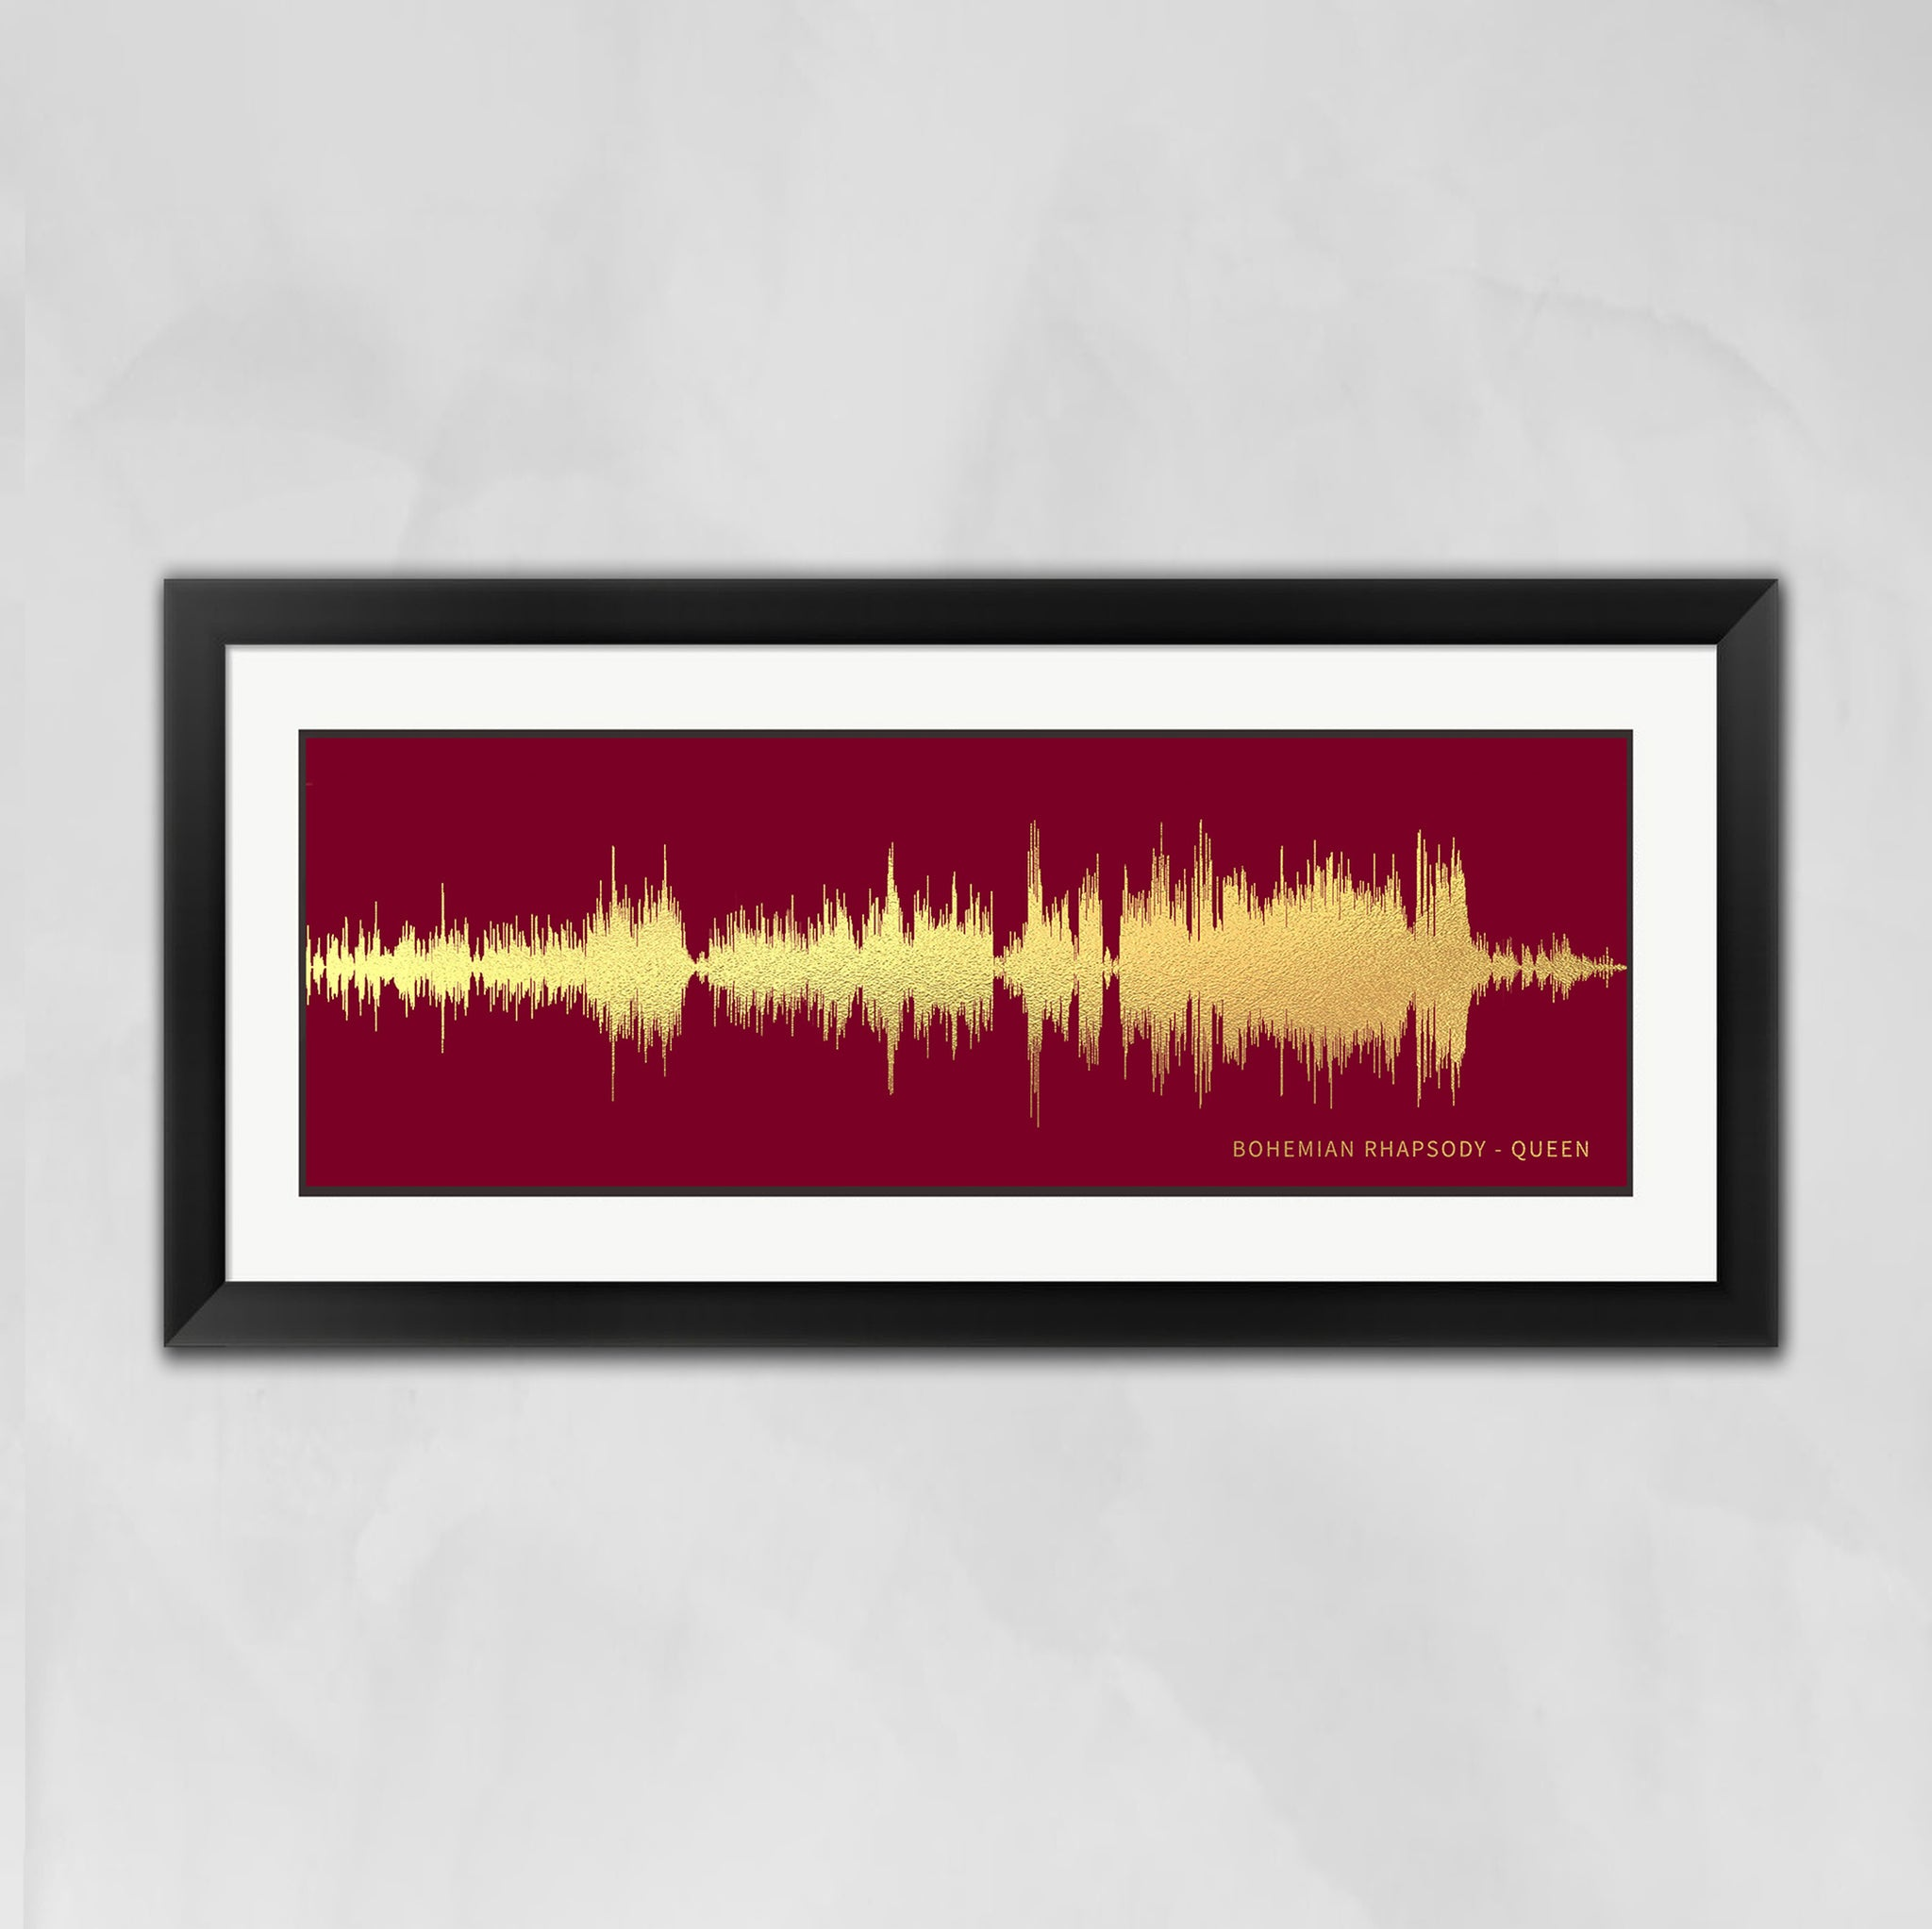 Song Wave Art | Soundwave From Your Favorite Song | Bohemian